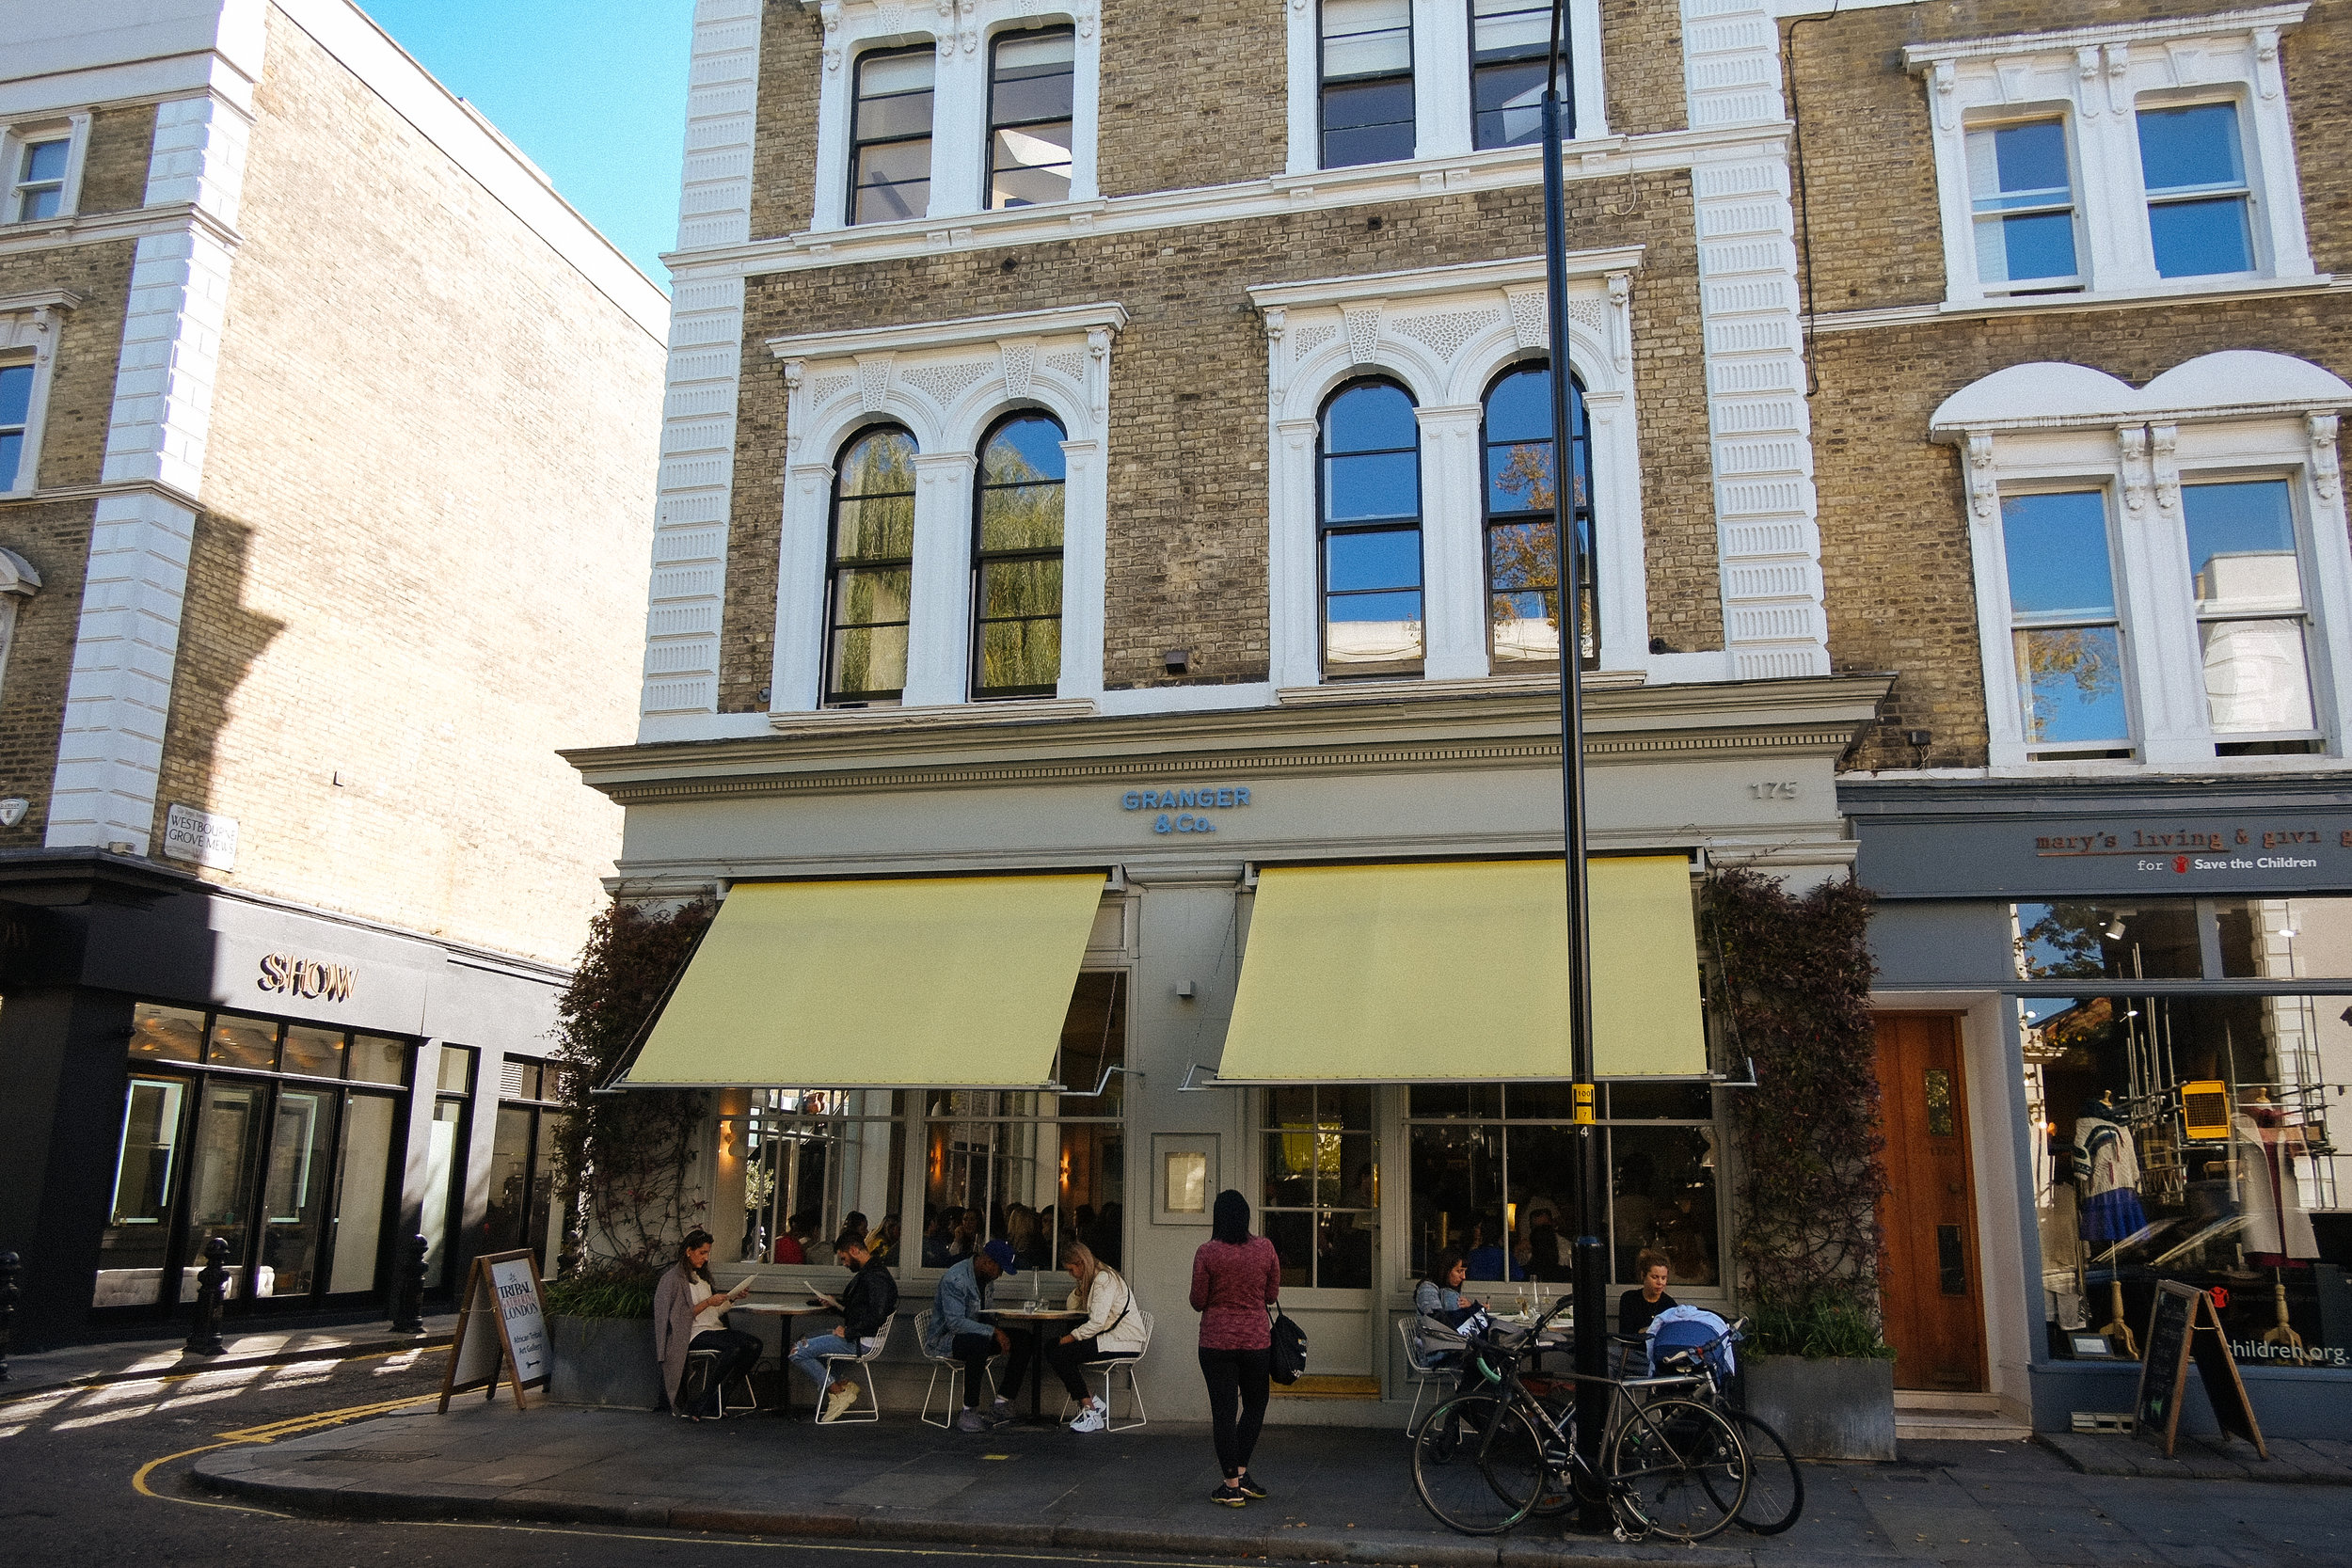 Granger & Co., Westbourne Green, UK - 2018-10-09: This was one on the MUST list. Granger & Co. in the Westbourne Green district of London. I had the black lentil daal with a poached egg and a much deserved coffee. We sat at the bar and was a great first meal in London.